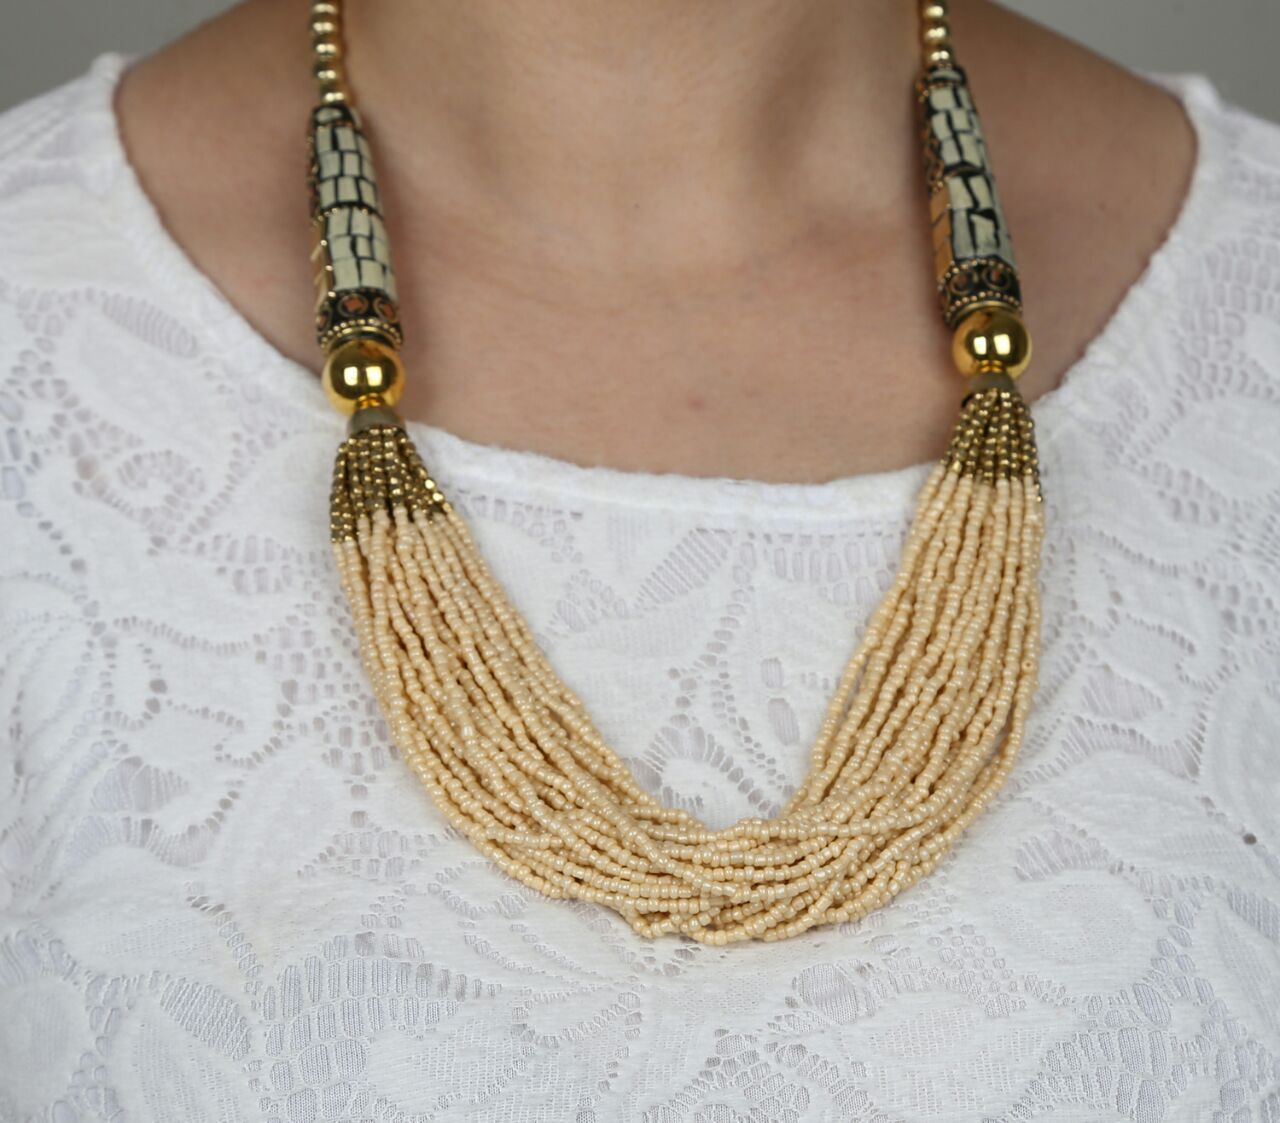 Handmade Statement Boho Indian Style Necklace - Beige